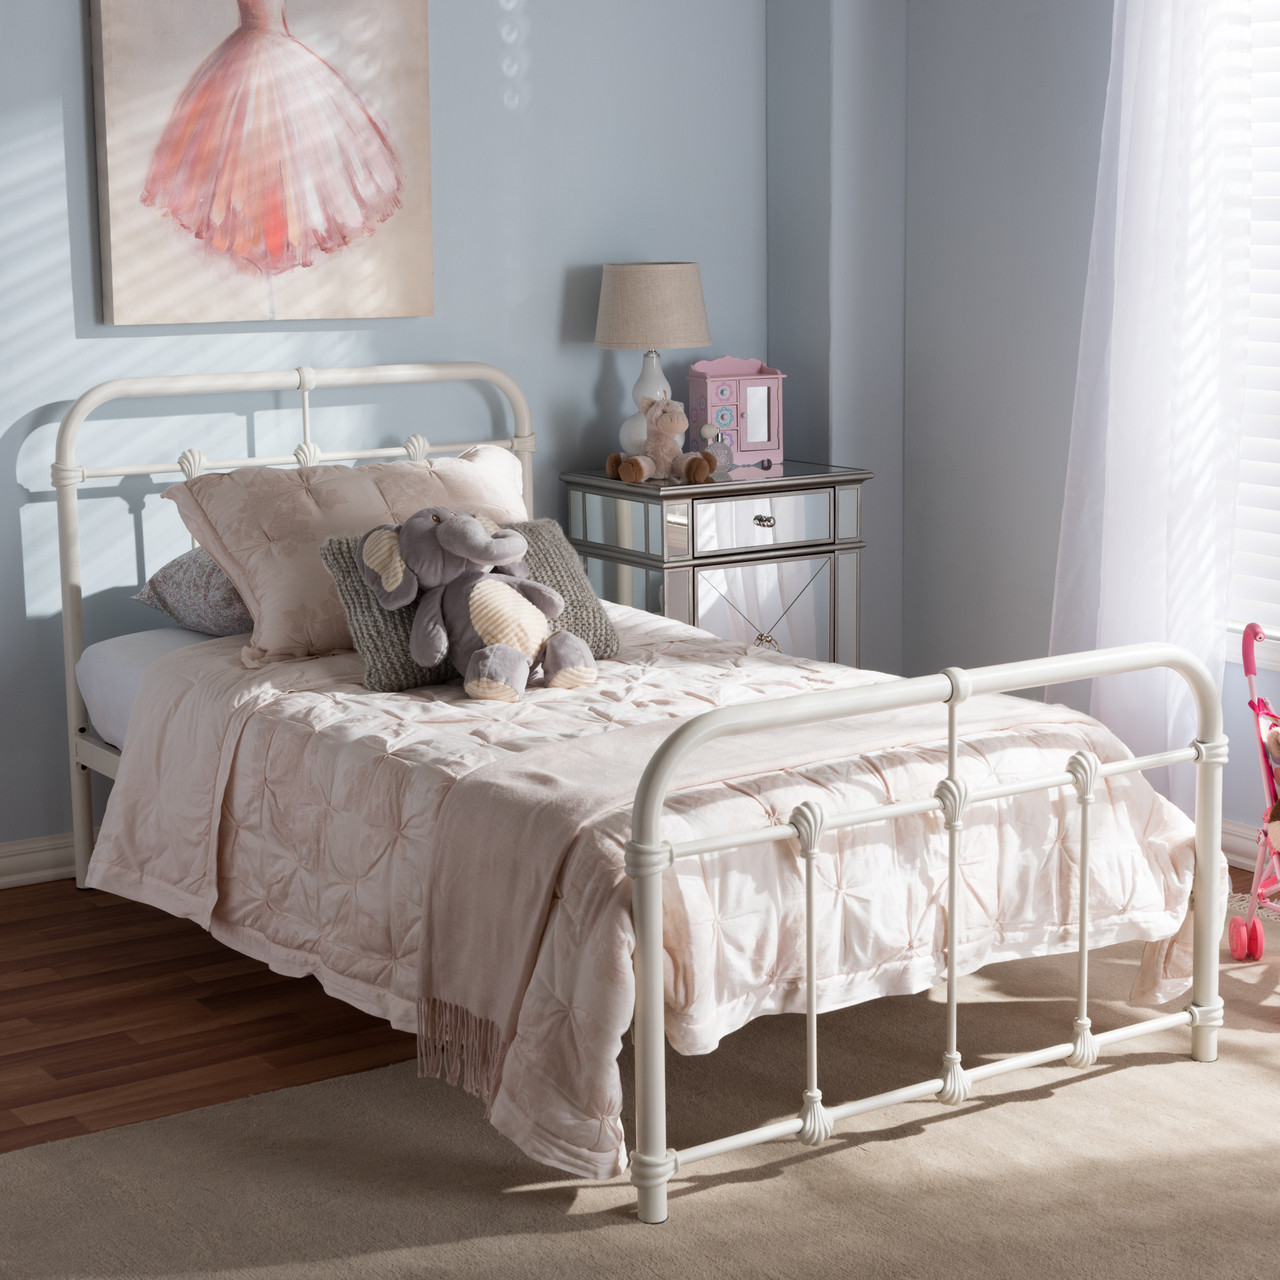 df5428f4897c Baxton Studio Mandy Vintage Industrial White Finished Metal Twin Size  Platform Bed - DealBeds.com